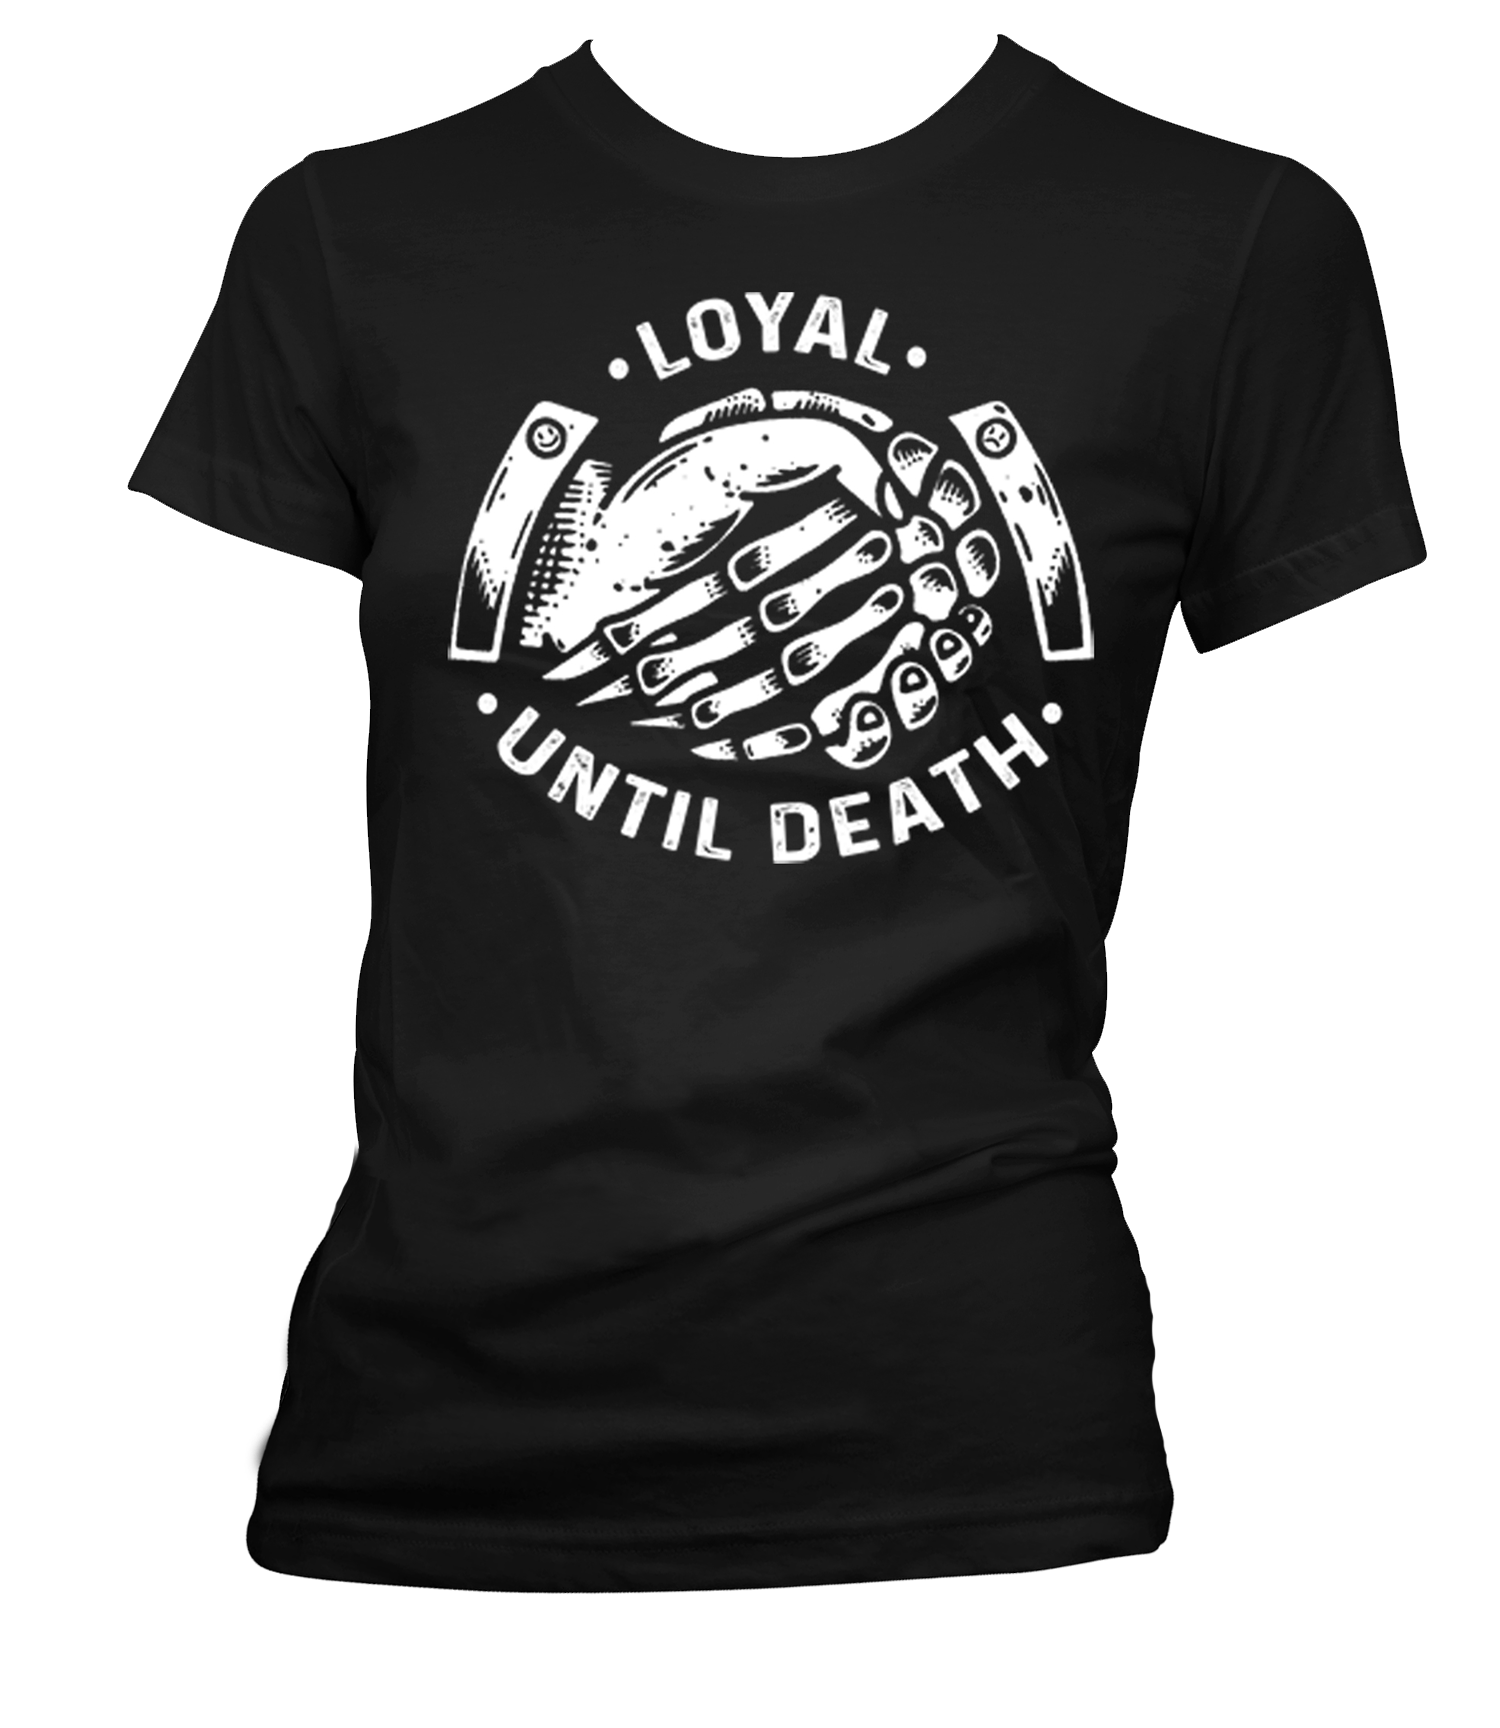 The LOYAL UNTIL DEATH Women's Tee